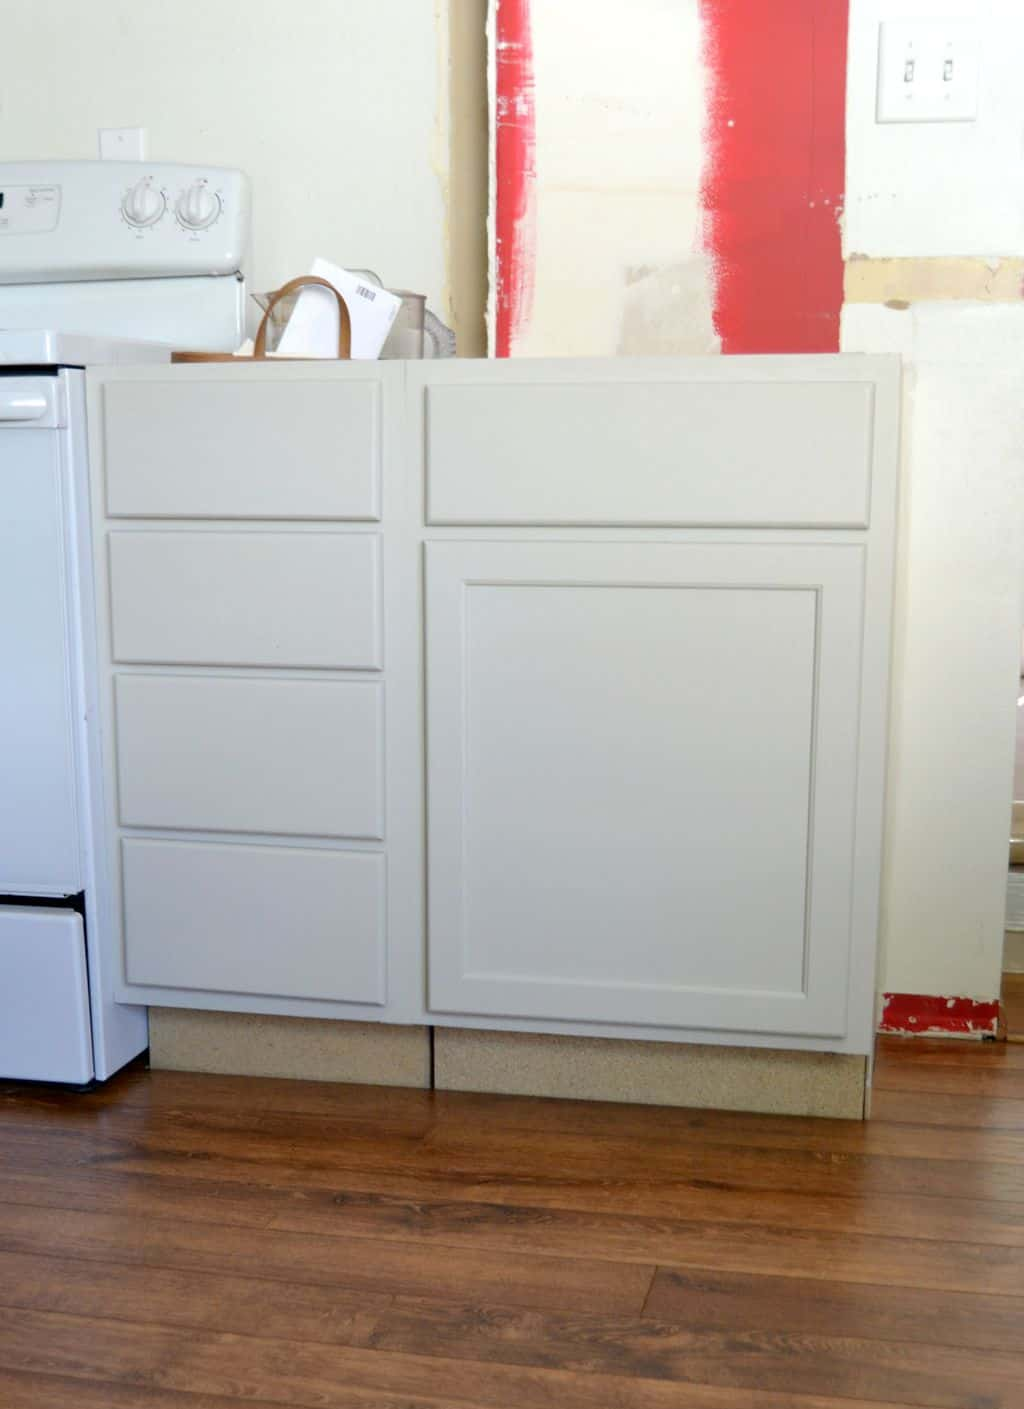 Add Drawers To Kitchen Cabinets Kitchen Makeover 2015 Remove Half Wall Extend Beam Add